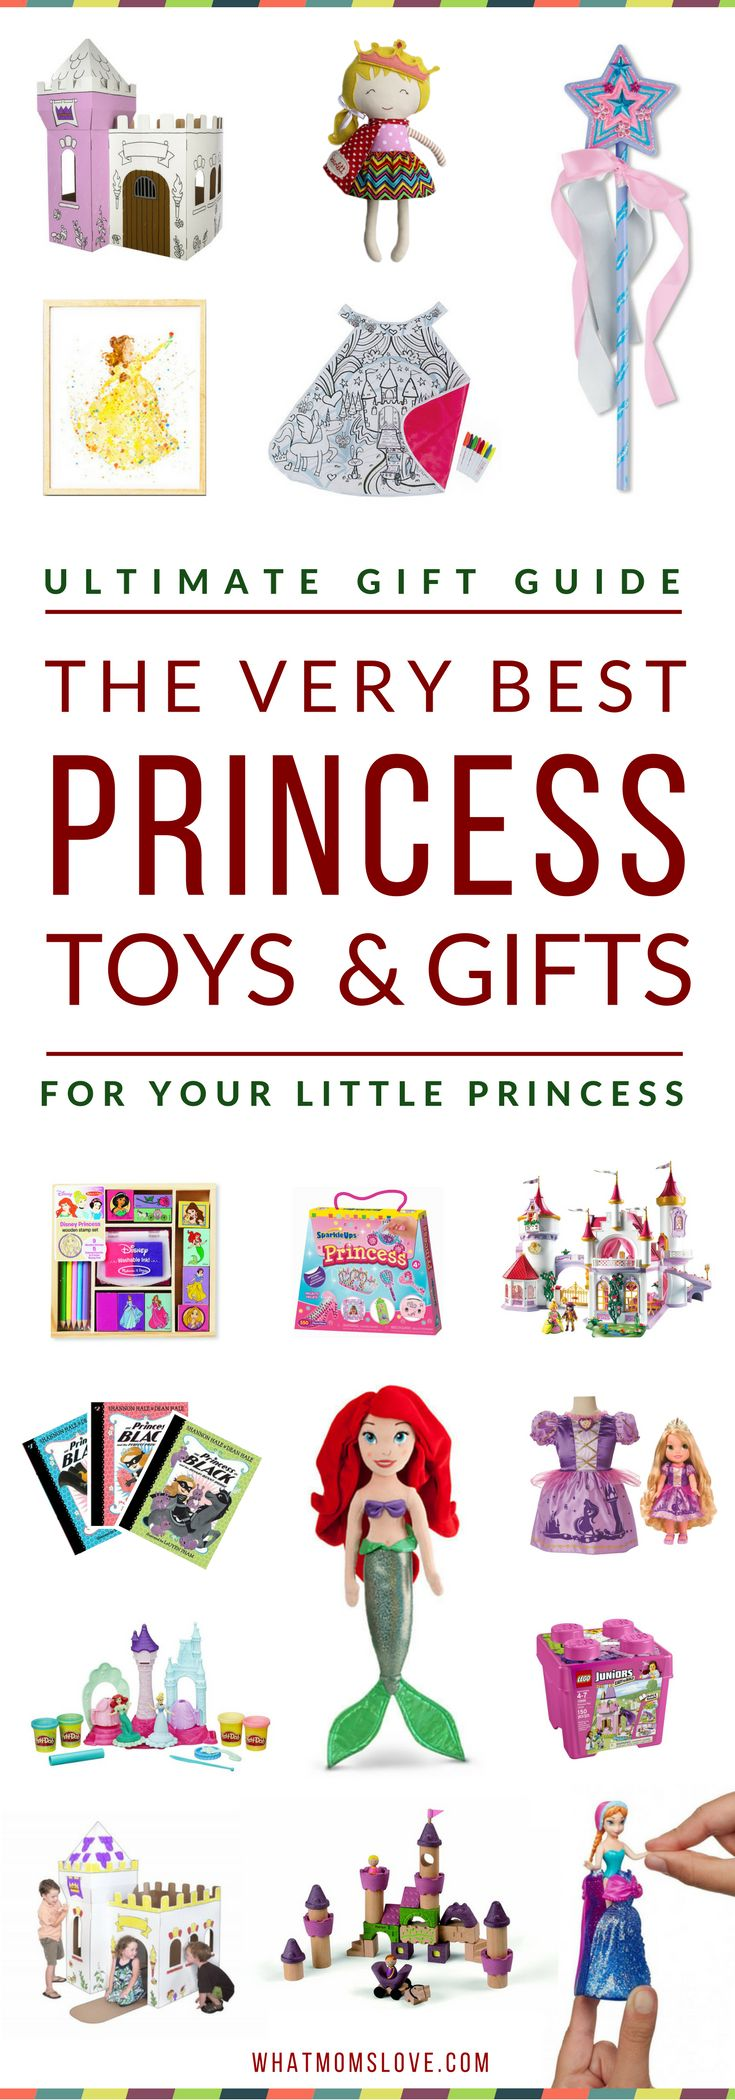 Best Princess Toys & Gifts for Girls | Our top picks have been extensively tested by kids & rated highly in playability, longevity & fun! Guide includes specific product recommendations for all things Princess: dolls, princess castles, arts & crafts, building toys, books & more. Includes both Disney Princess gifts & general Princess themed toys. Amazing gift ideas for toddlers to tweens for the Holidays, a birthday or other special occasion. Click to access the top picks, or pin for later.